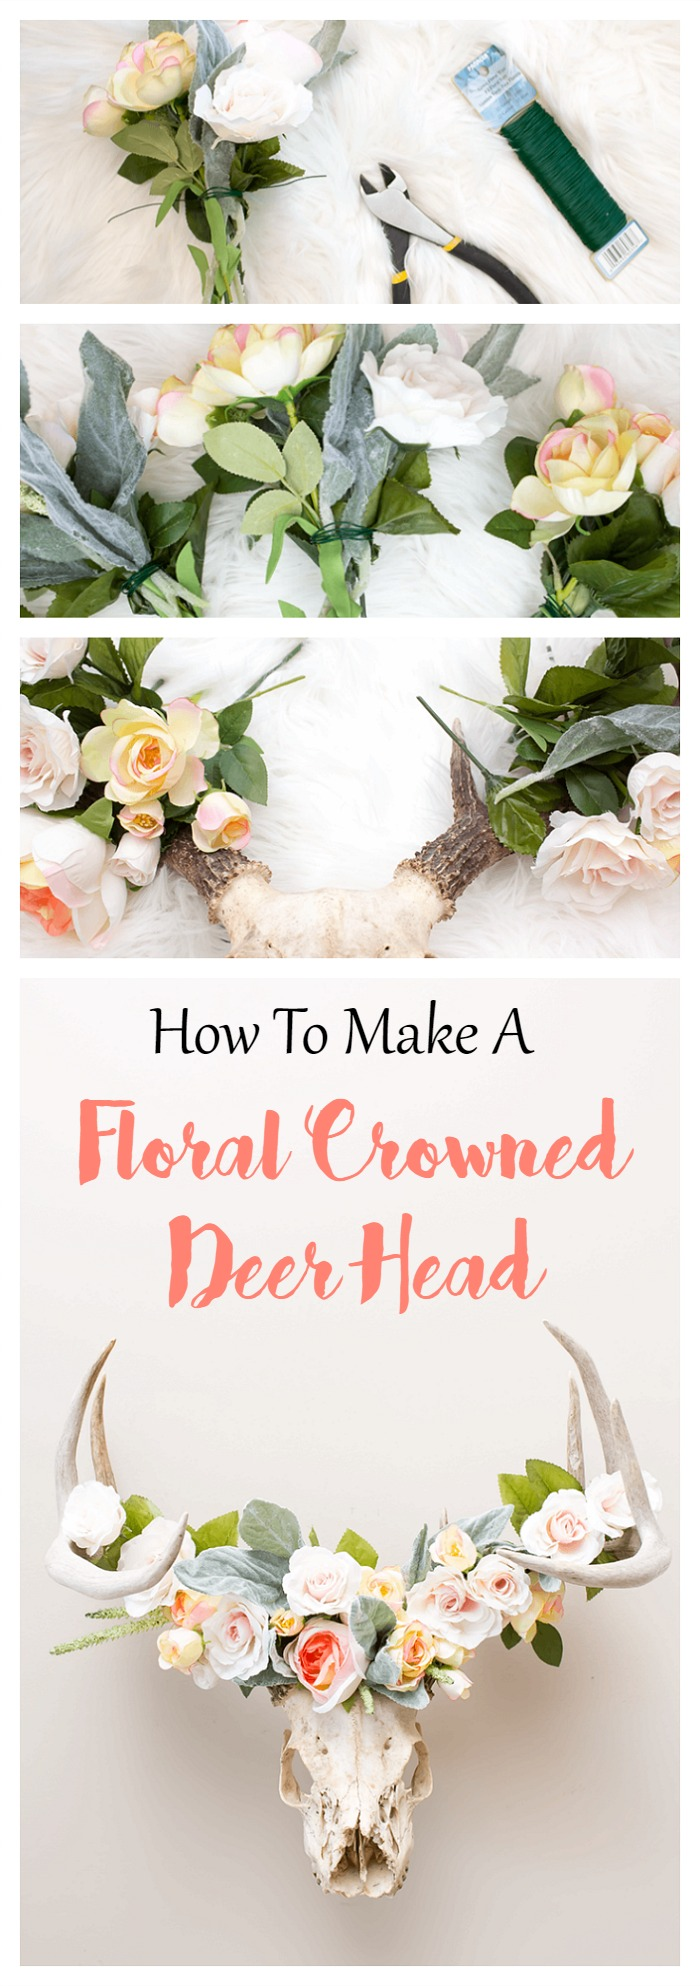 How to make a floral crowned deer head a pretty fix this diy floral crowned deer head takes just 10 minutes to create apply the same izmirmasajfo